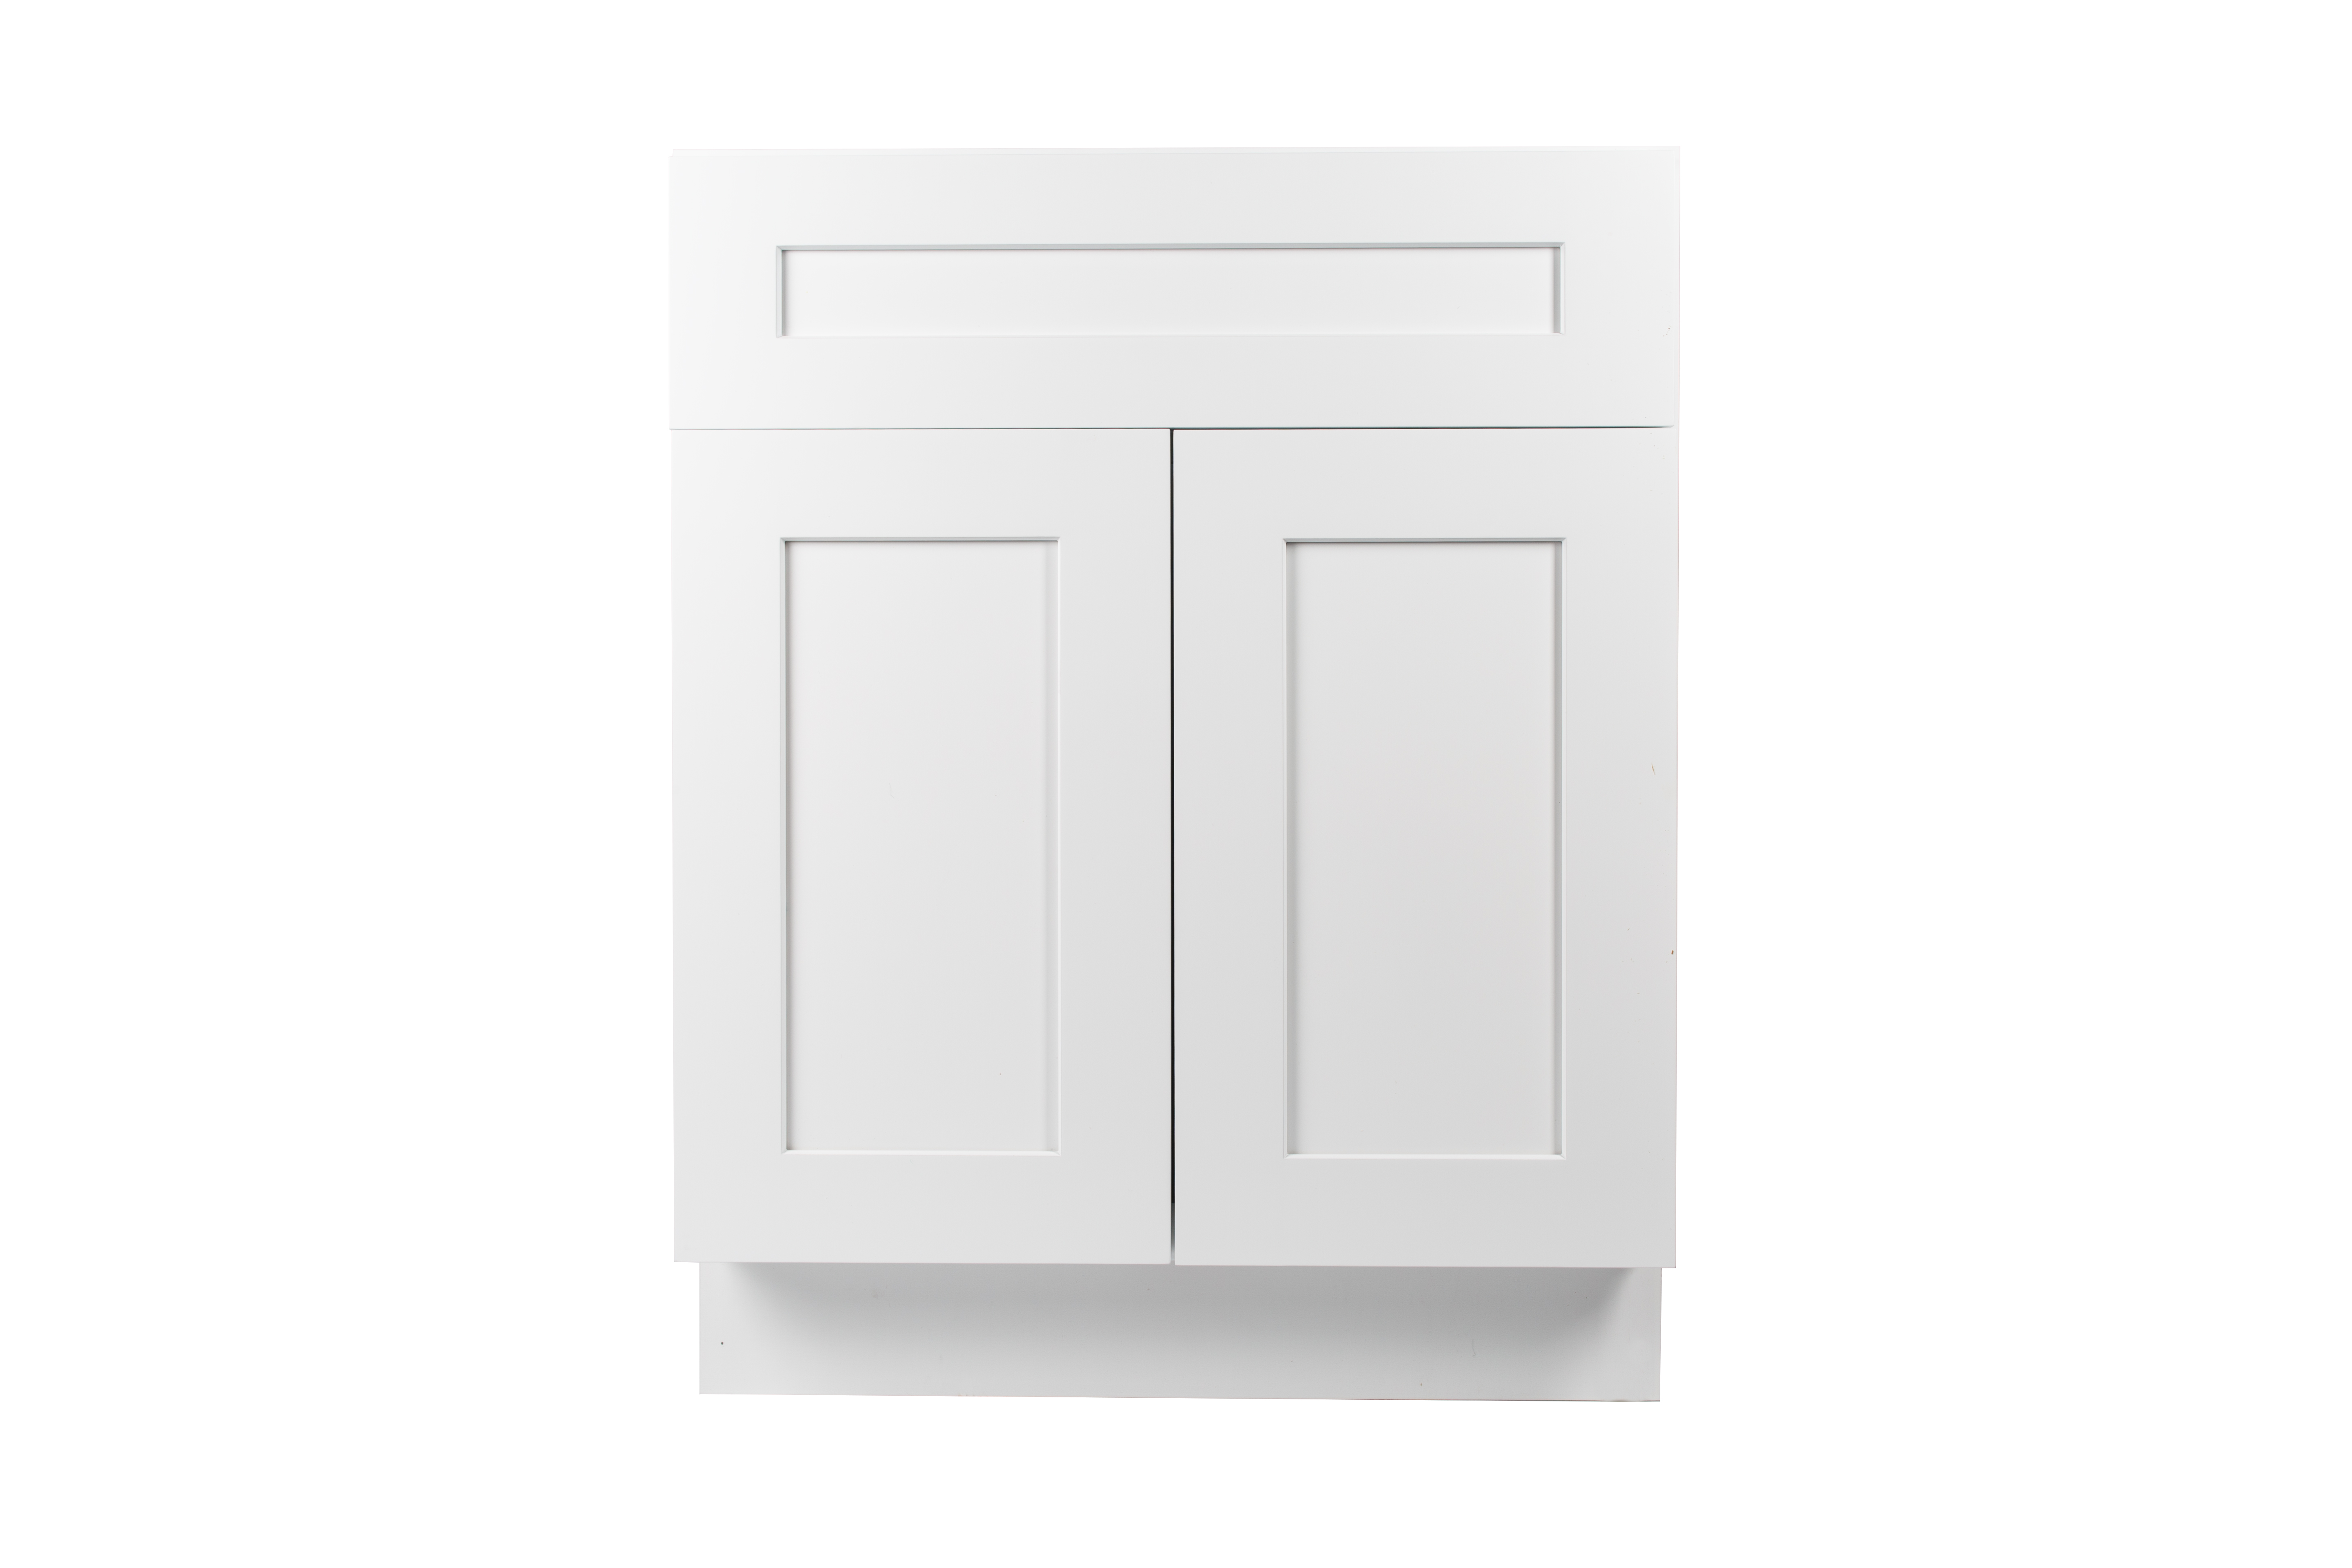 Ready to Assemble 21Wx34.5Hx21D in. Shaker  VANITY SINK BASE CABINET-1-FAKE DRAWER ,2 DOORS in White